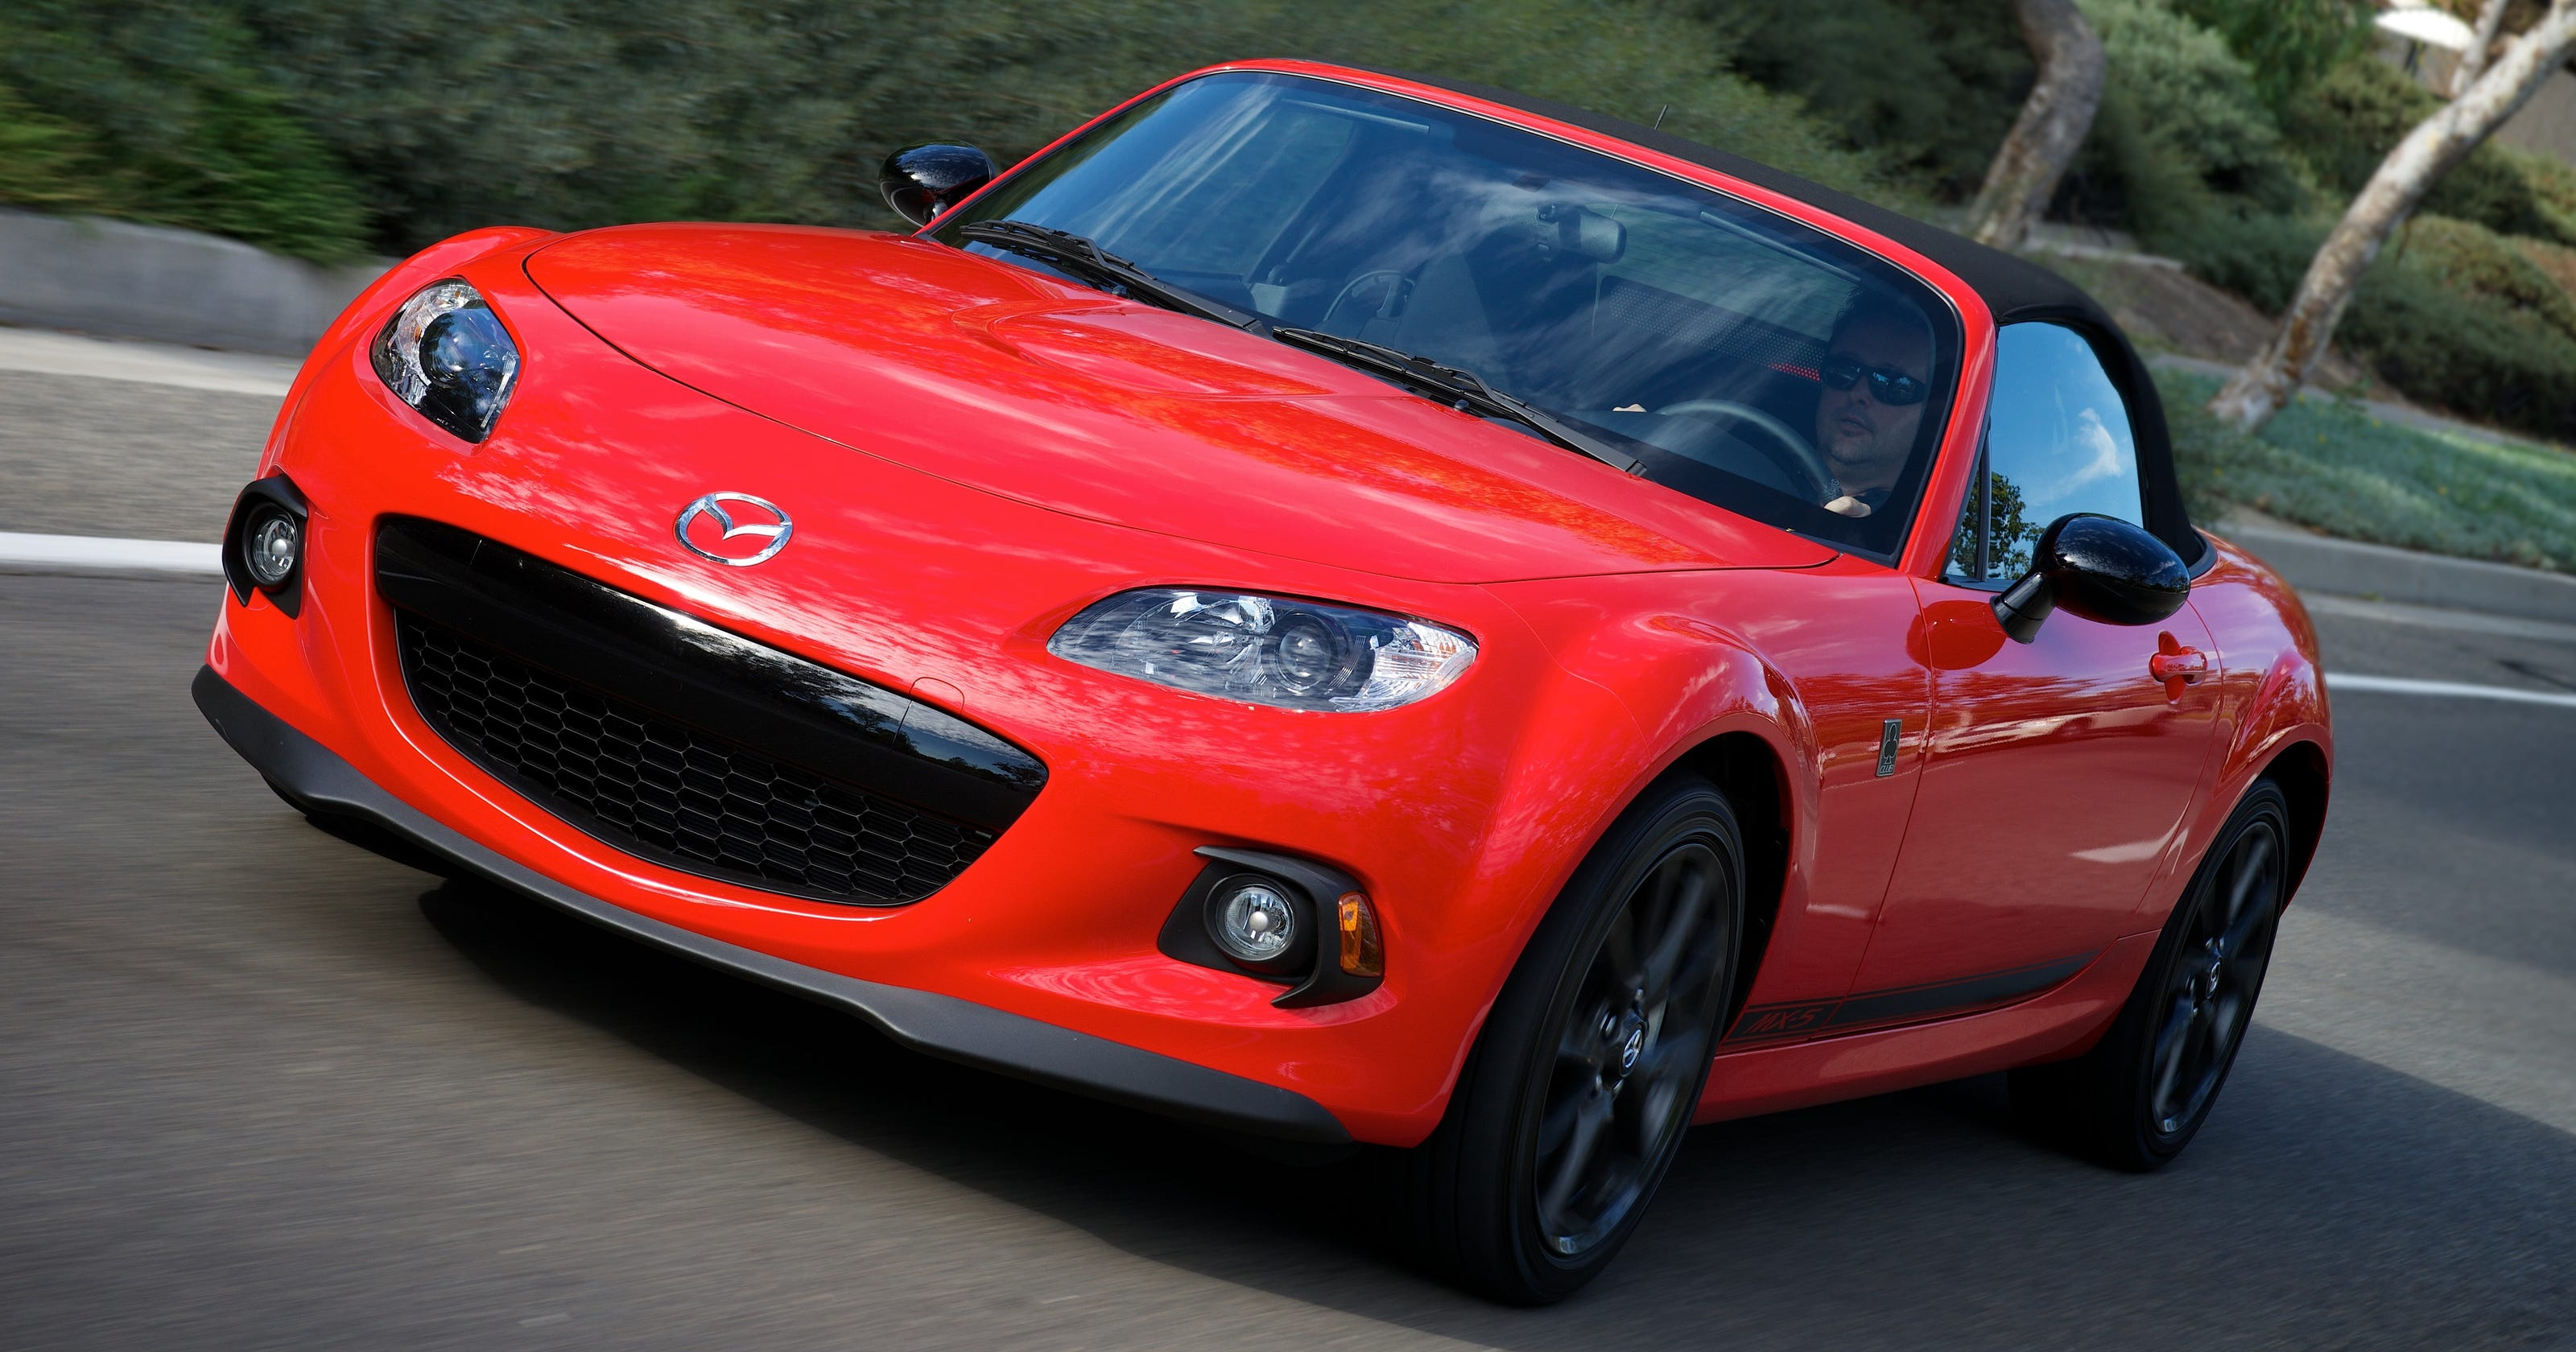 wp fourth generation new gen for na old sale v first mx comparison mazda nd miata